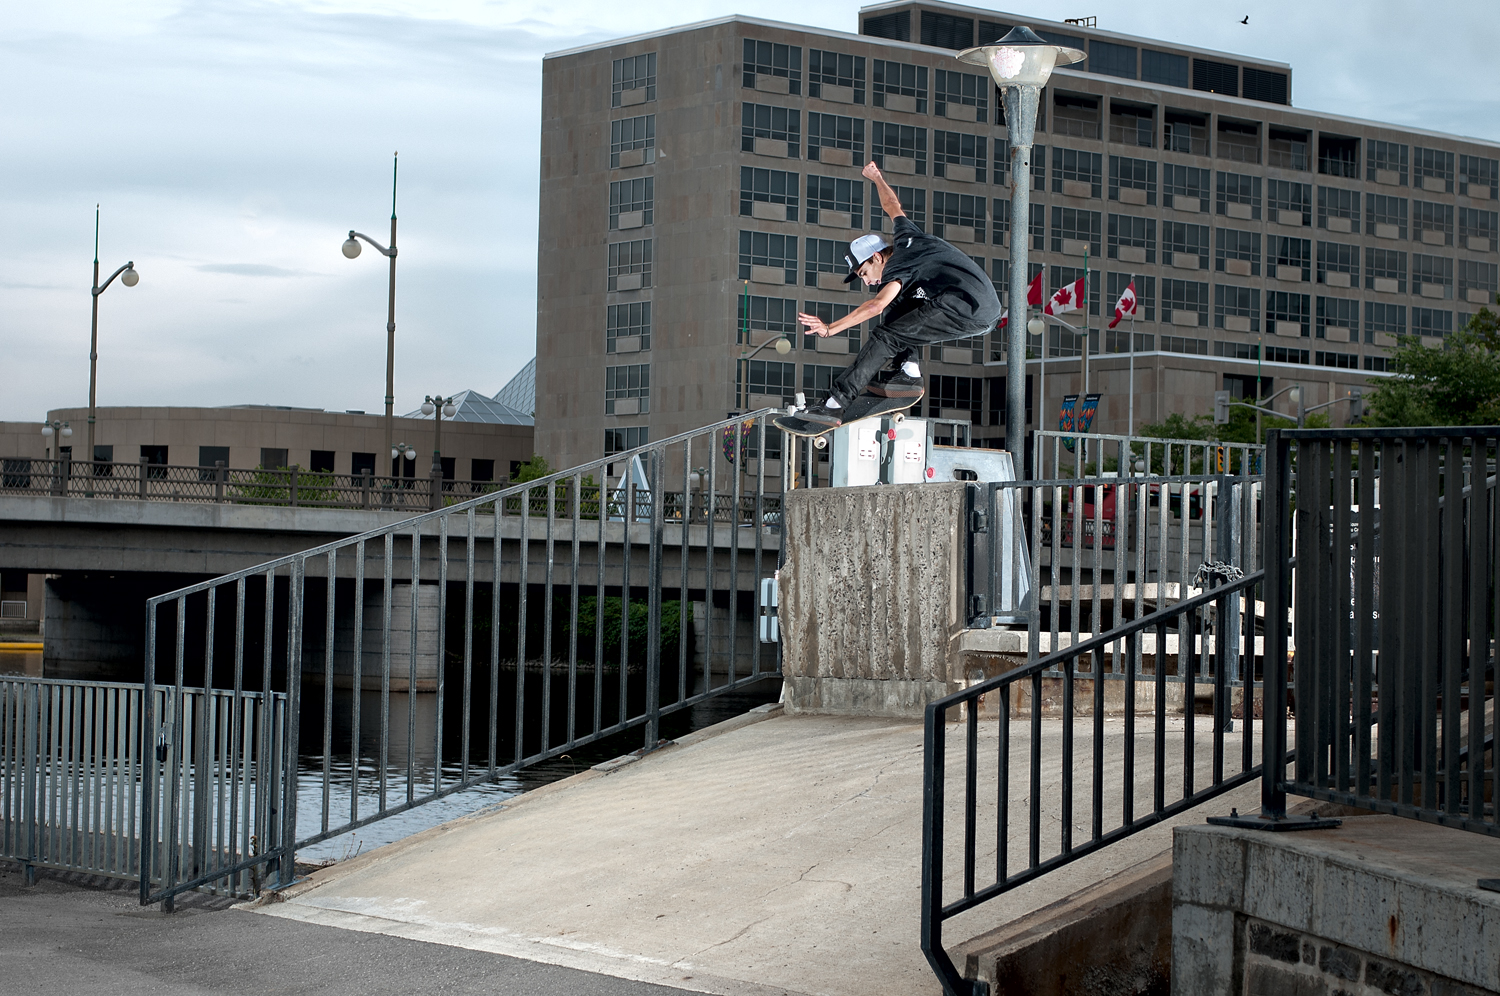 Sam Lind, Kickflip, Ottawa, ON 2012